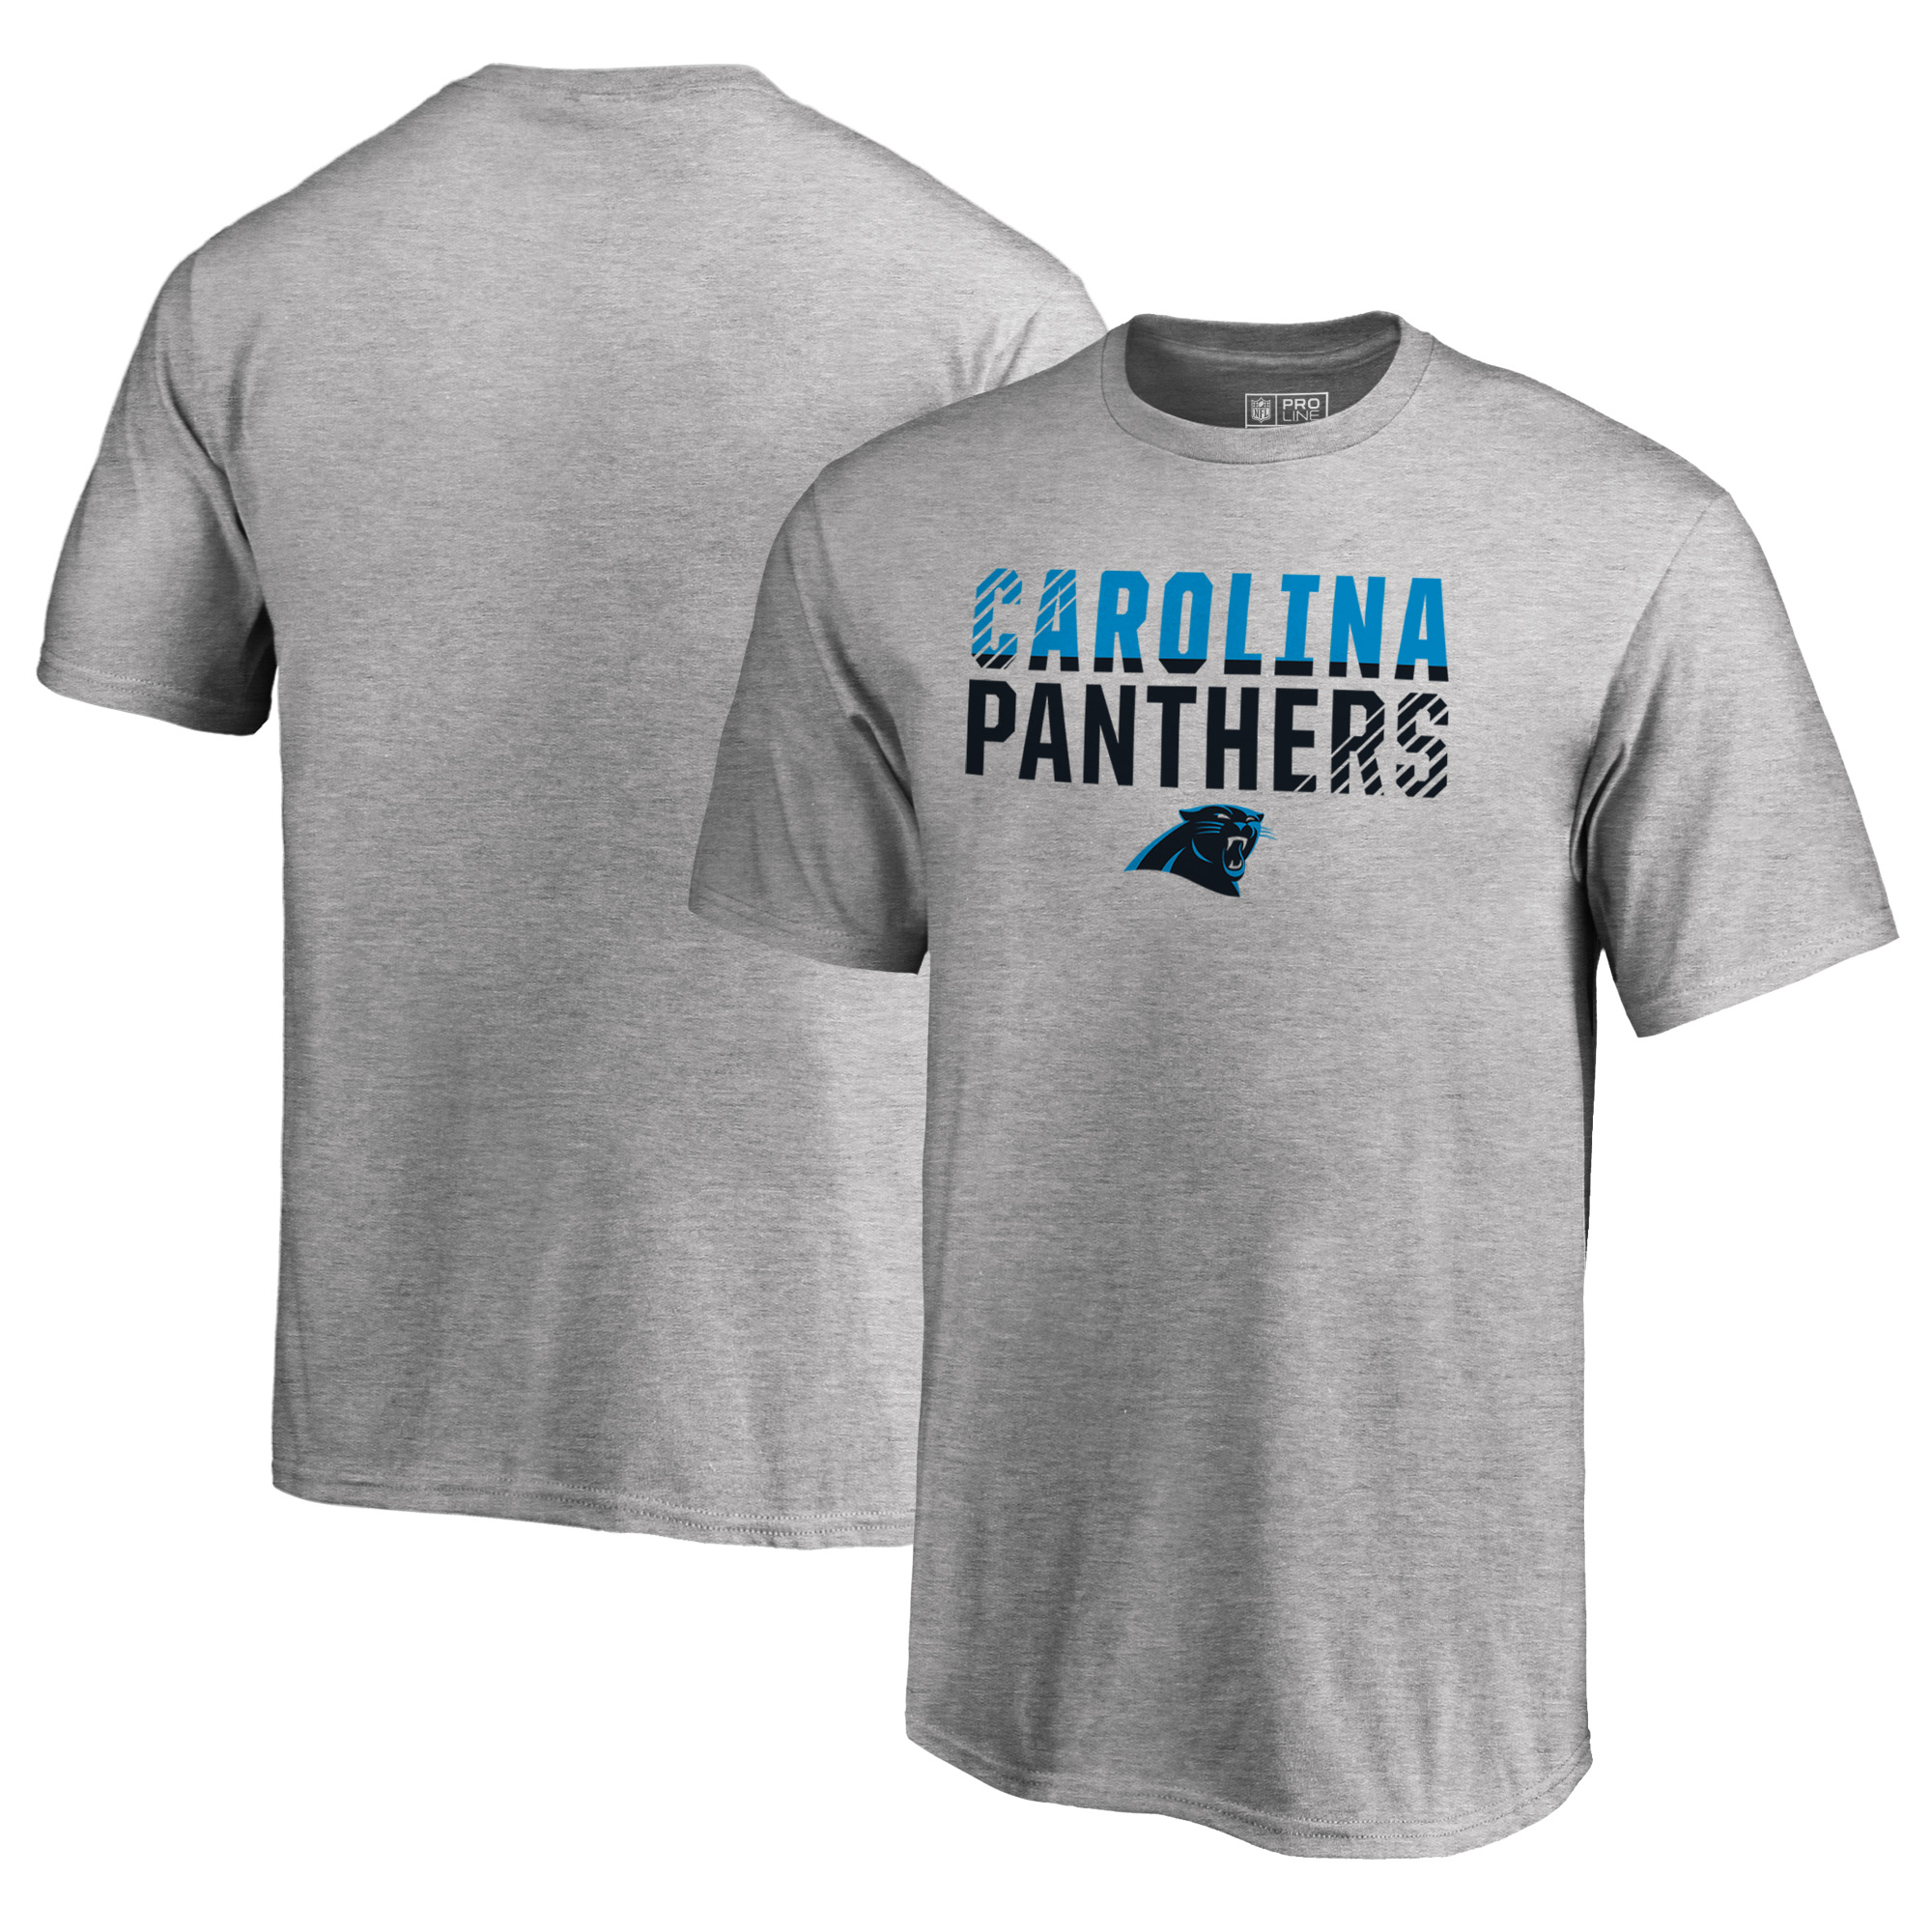 Carolina Panthers NFL Pro Line by Fanatics Branded Youth Iconic Collection Fade Out T-Shirt - Ash